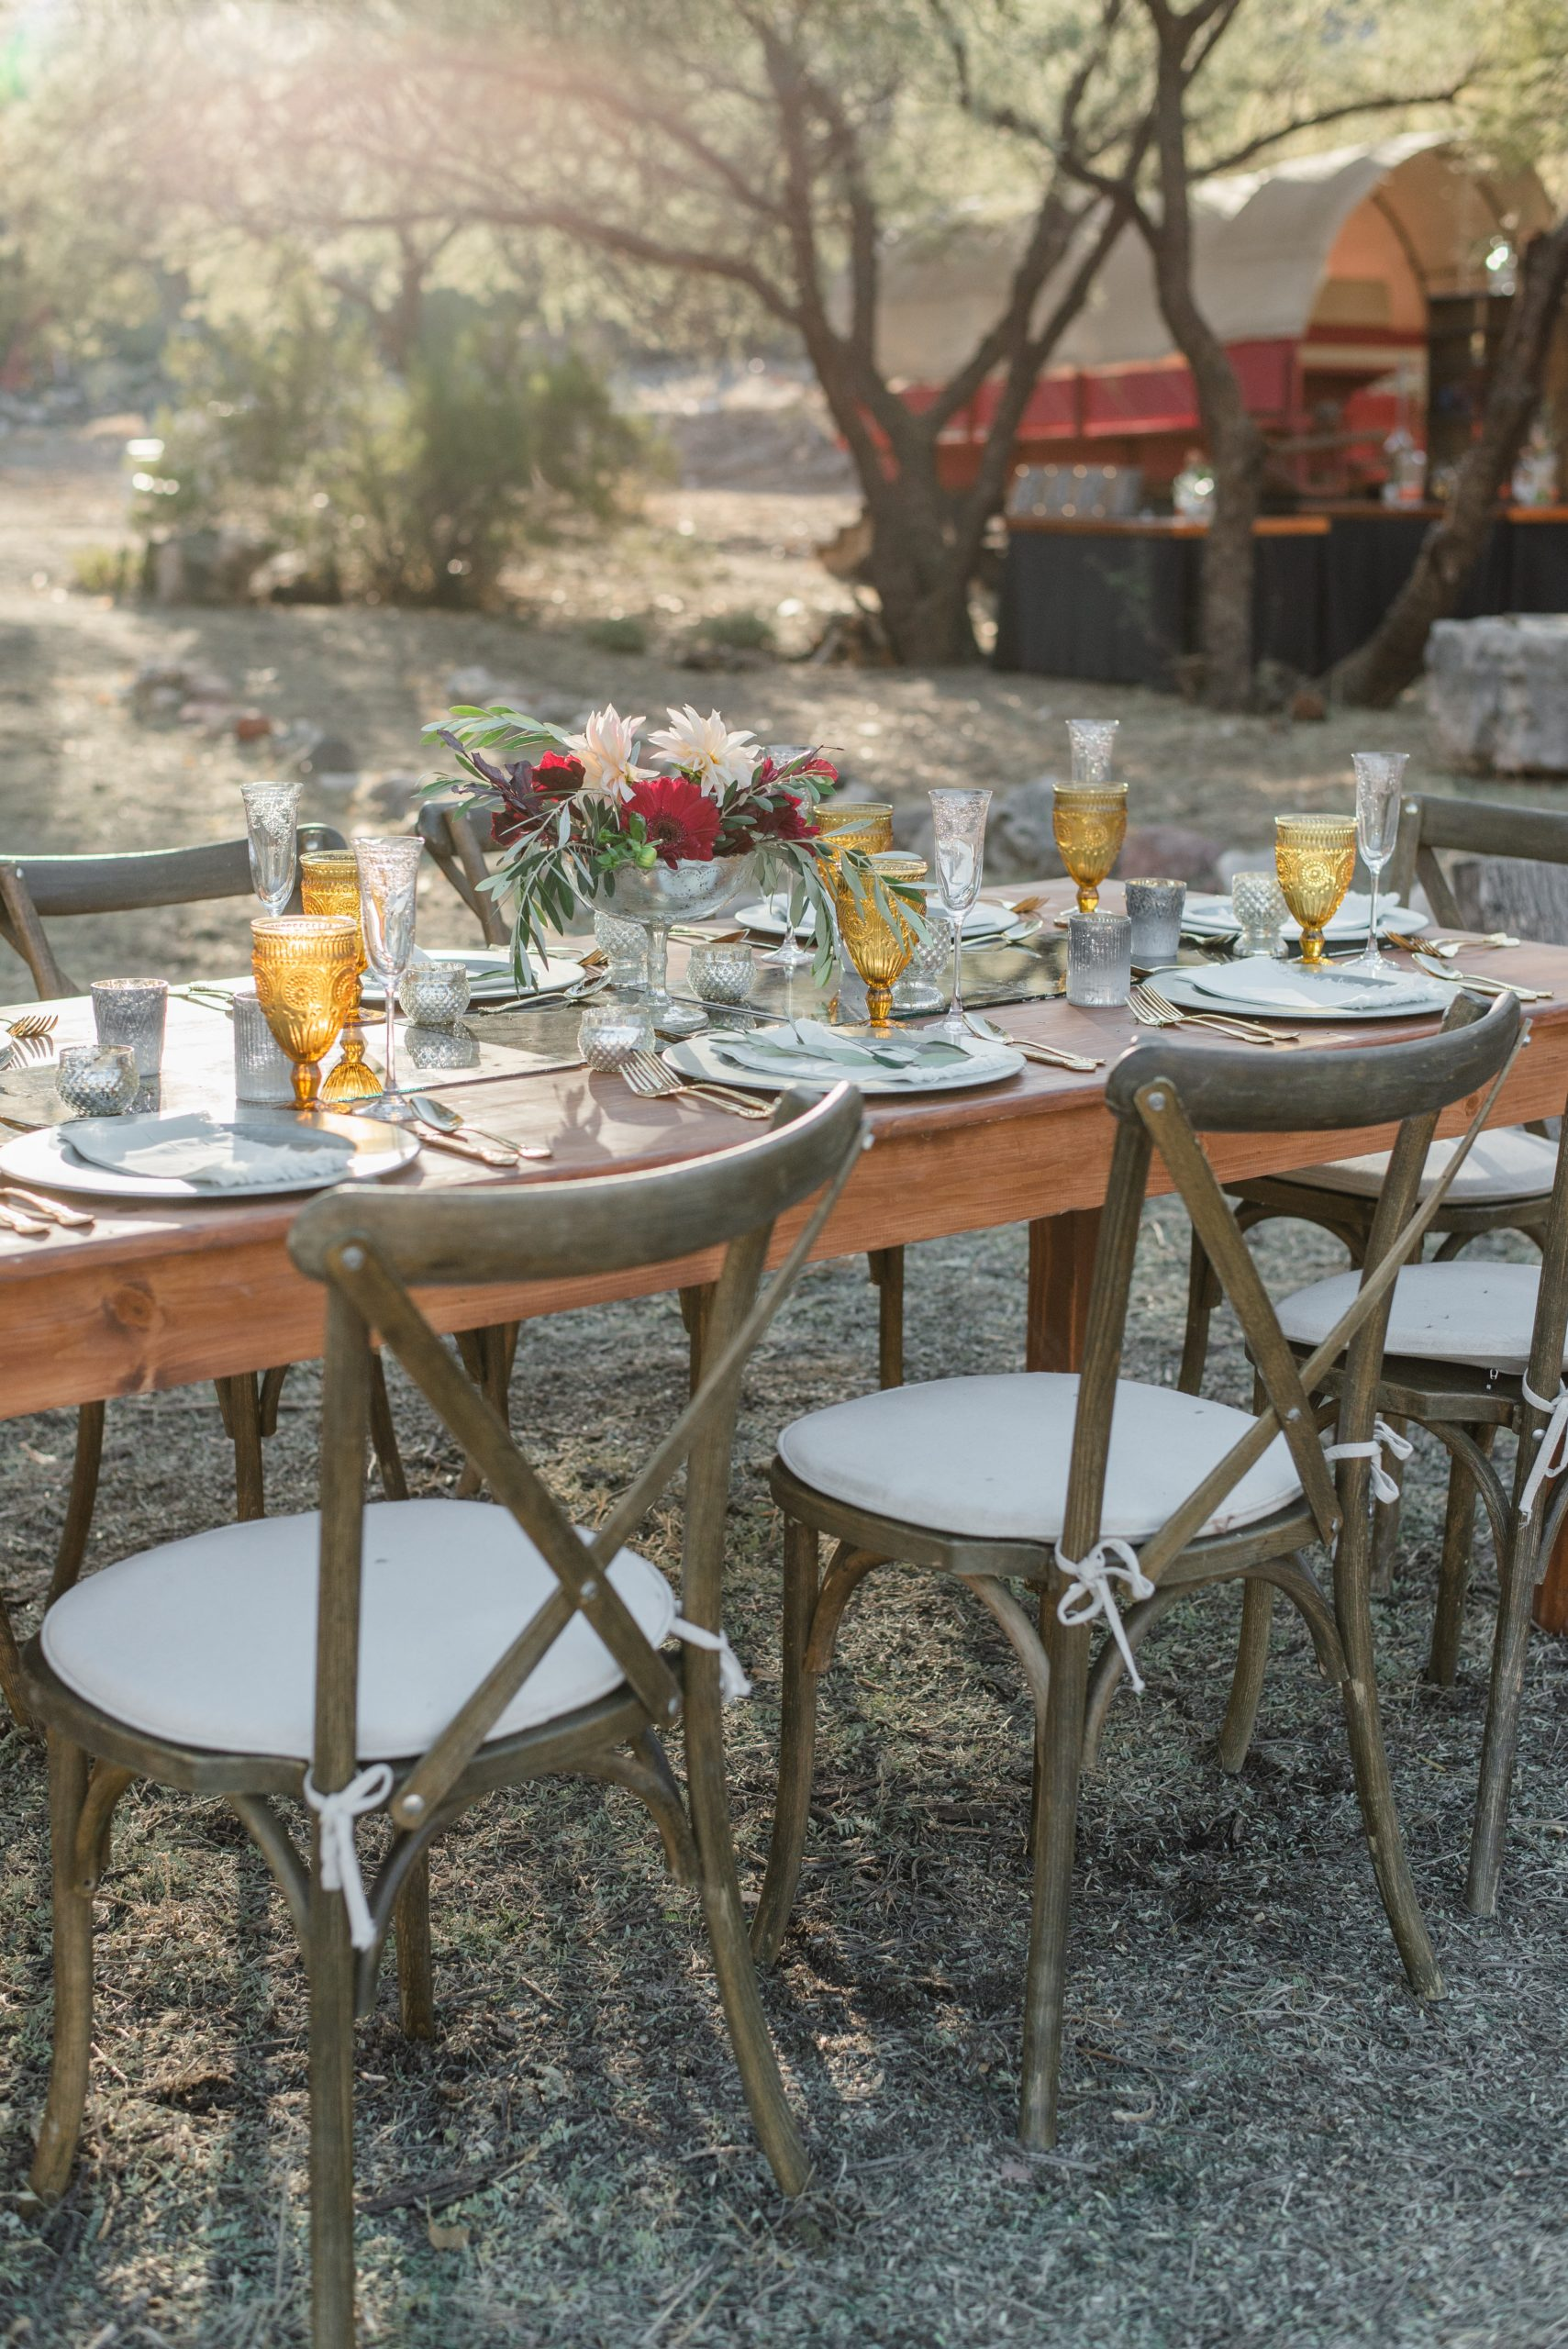 Outdoor dining table set for dinner